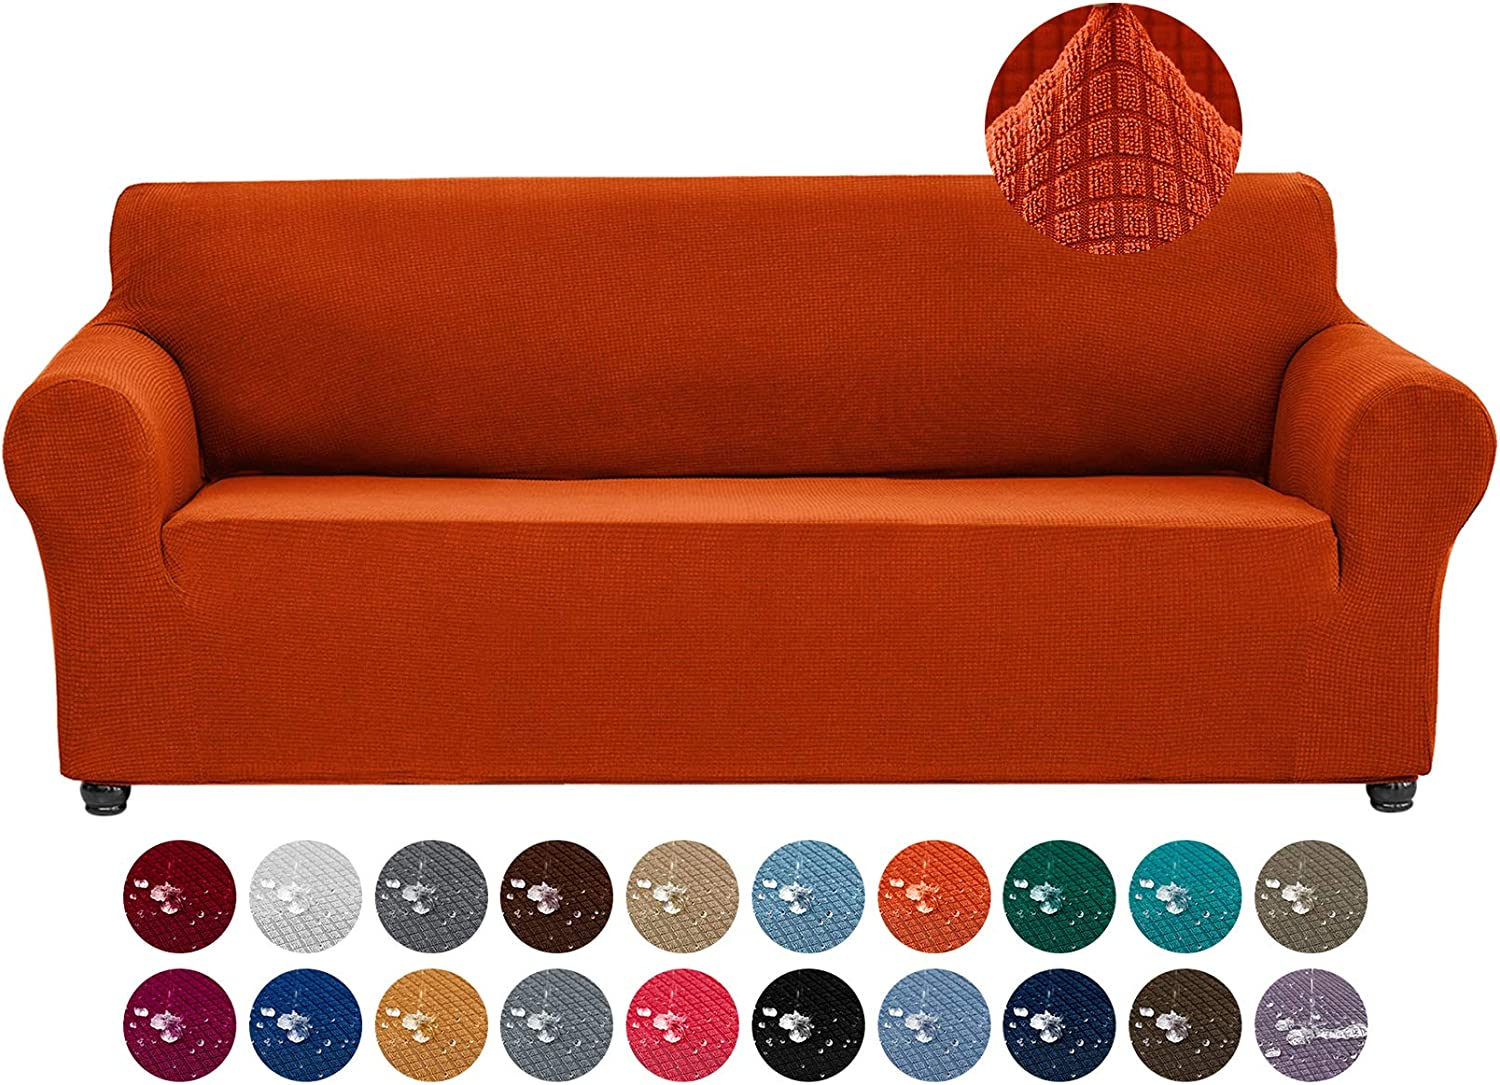 Joccun Stretch Couch Cover Slipcovers, 1-Piece Water Repellent Sofa Covers for 3 Cushion Couch Spandex Jacquard Washable Furniture Protector Cover for Living Room,Kids,Pets(Sofa,Pureed Pumpkin)